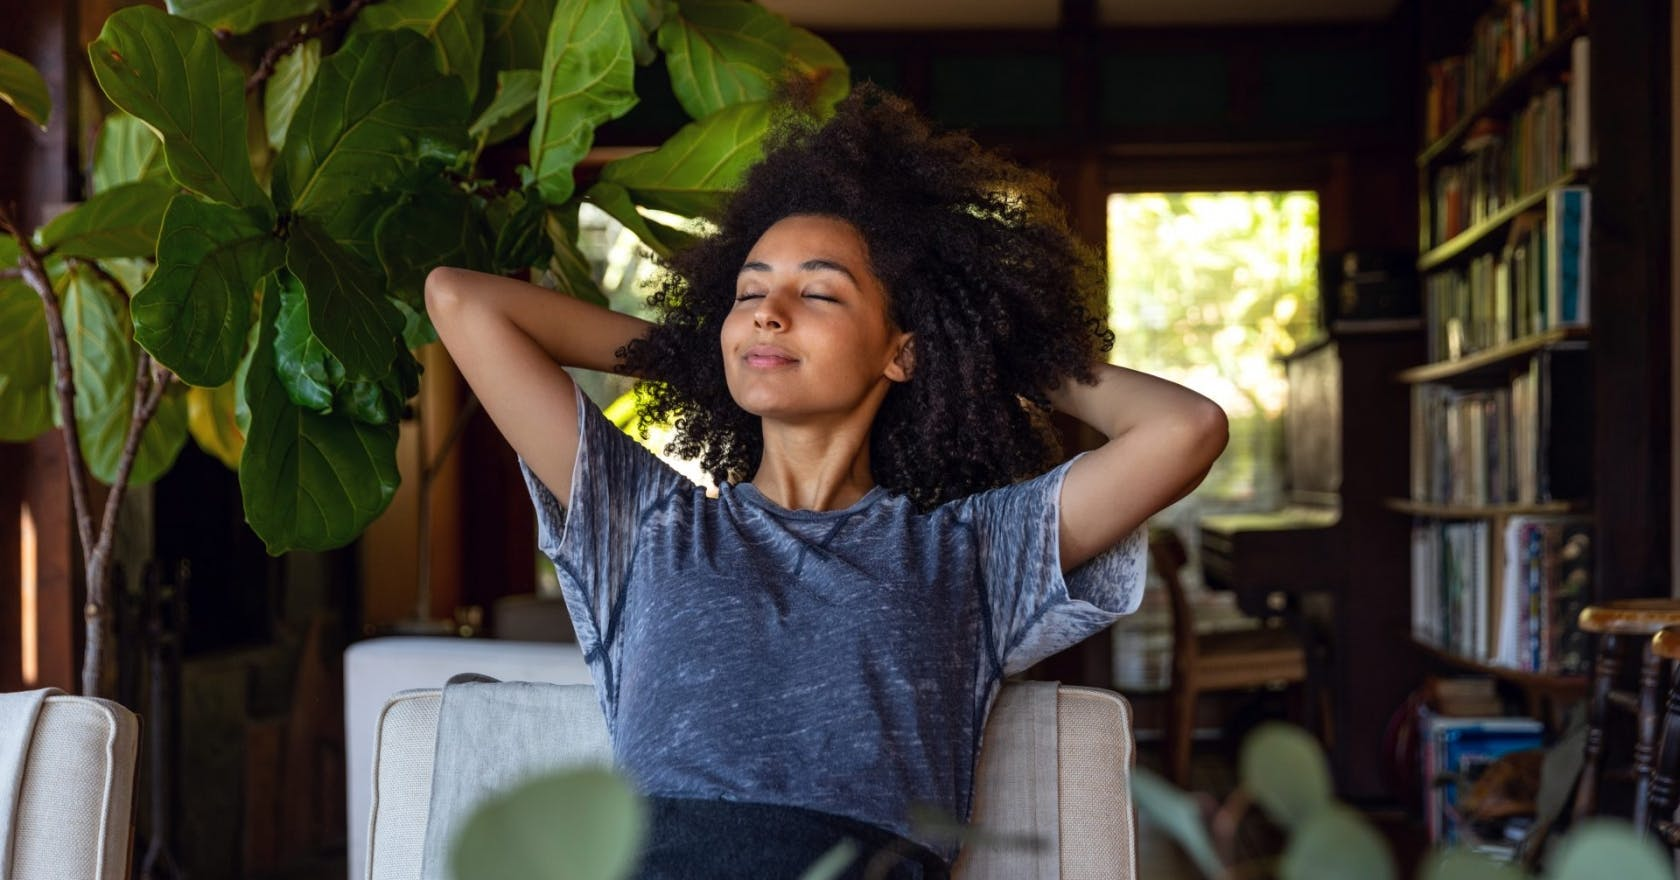 This simple self-care technique could reduce your stress levels in under 5 minutes